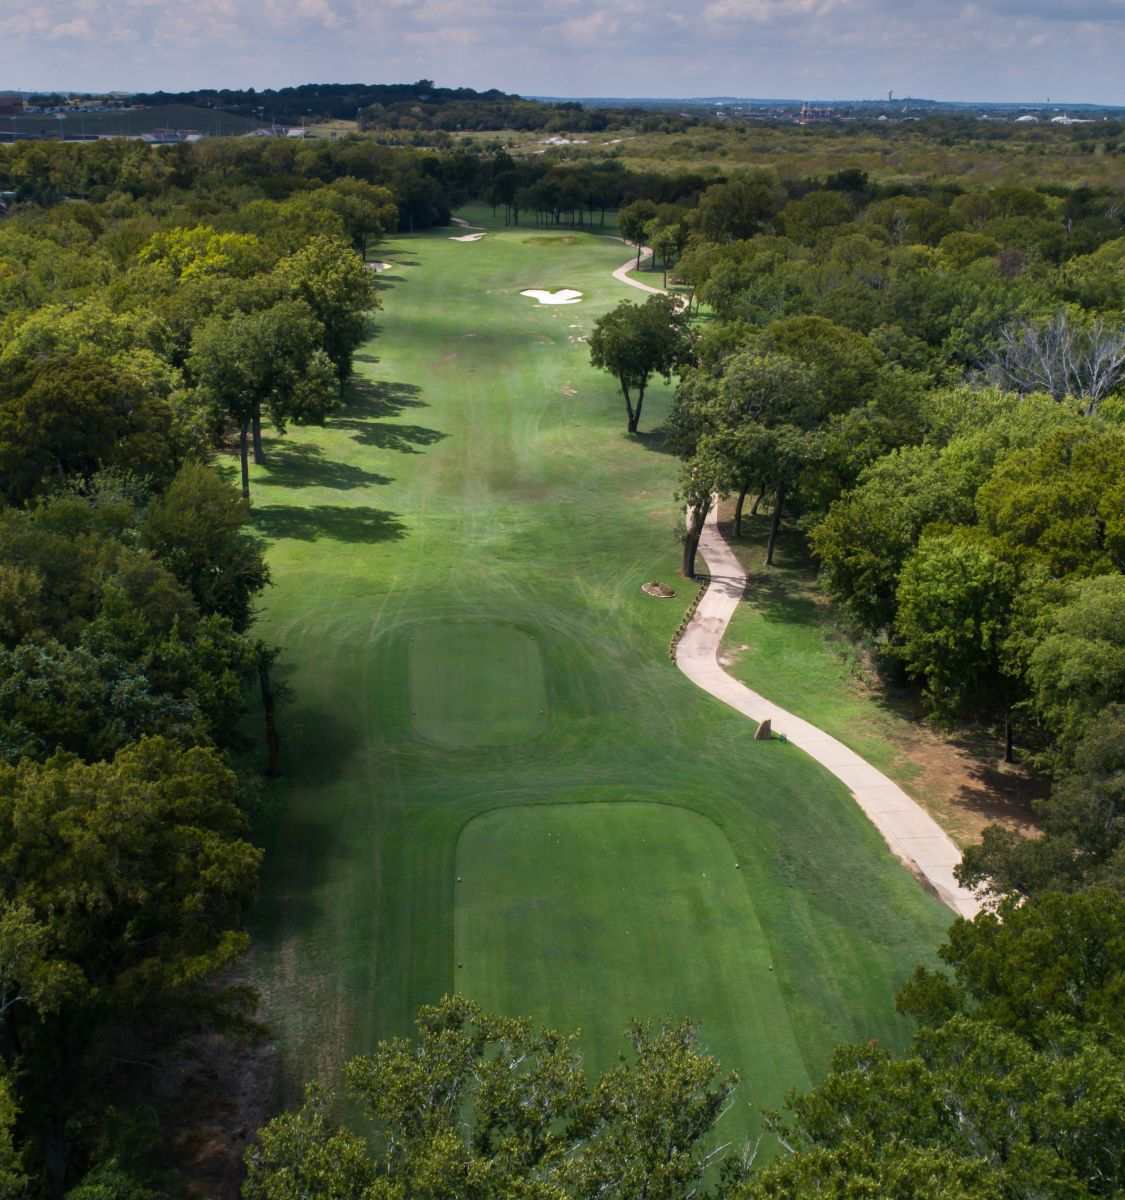 Fairway surrounded by trees at Southern Oaks Golf and Tennis Club